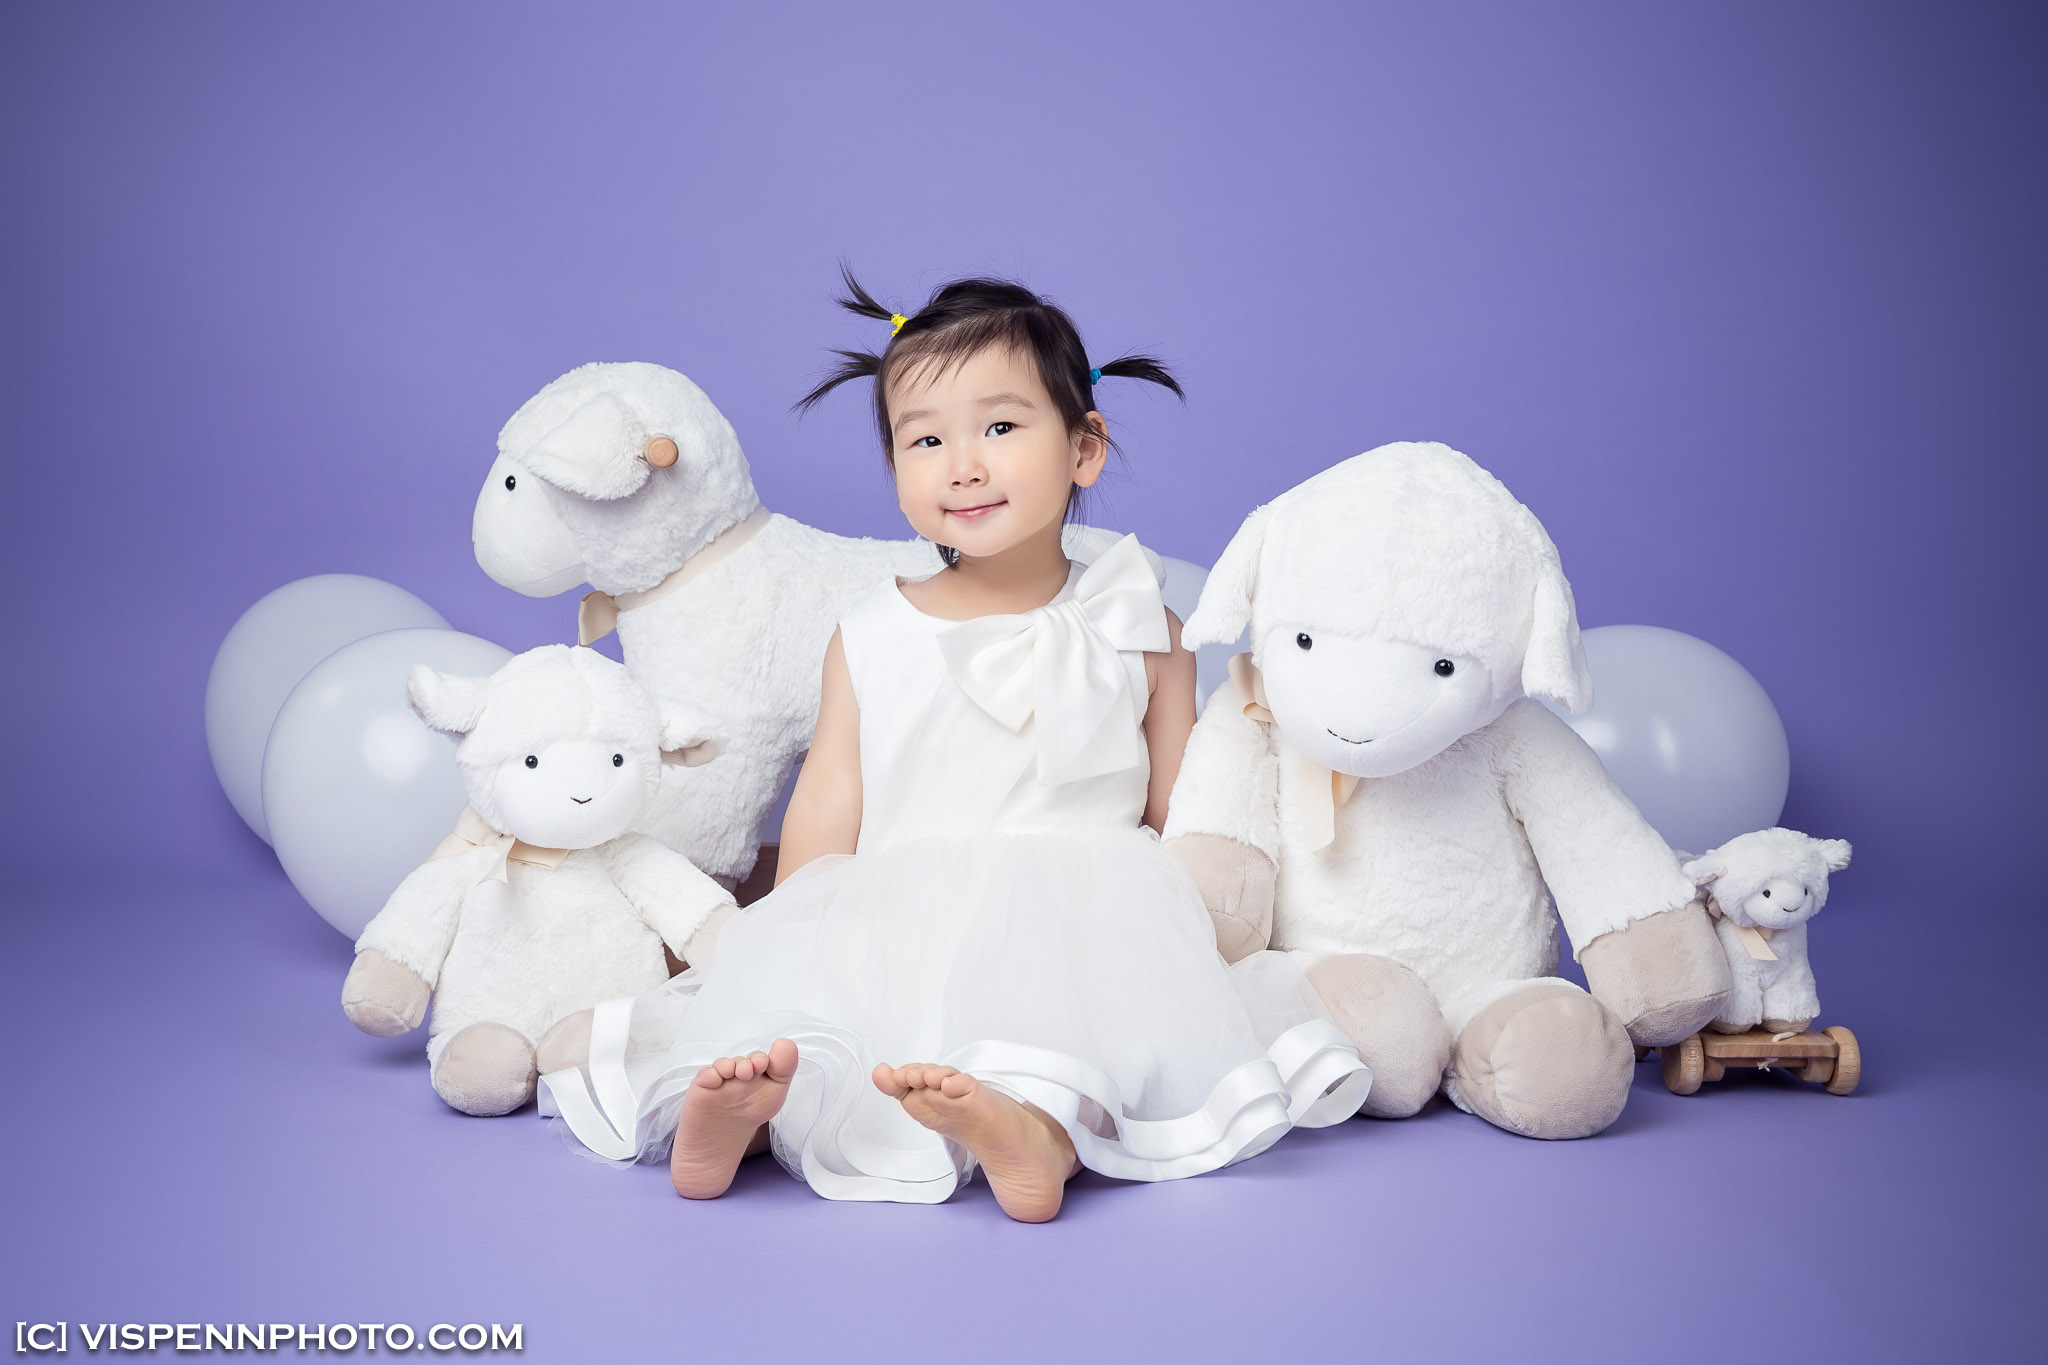 Melbourne Newborn Baby Family Photo BaoBao VISPENN 墨尔本 儿童 宝宝 百天照 满月照 孕妇照 全家福 KIDS VISPENN Jennifer 1168